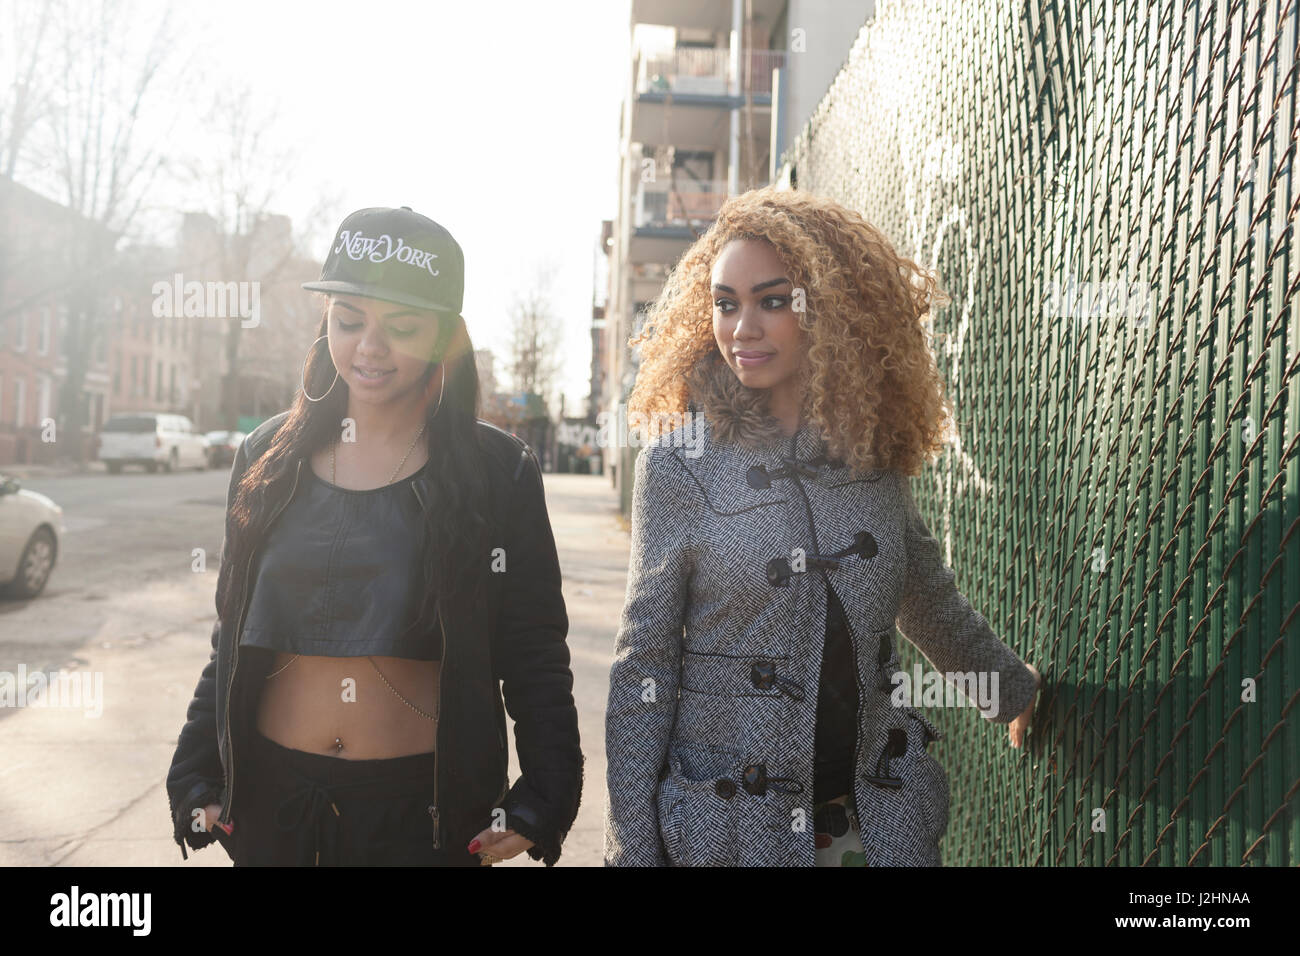 Portrait of two stylish young women - Stock Image